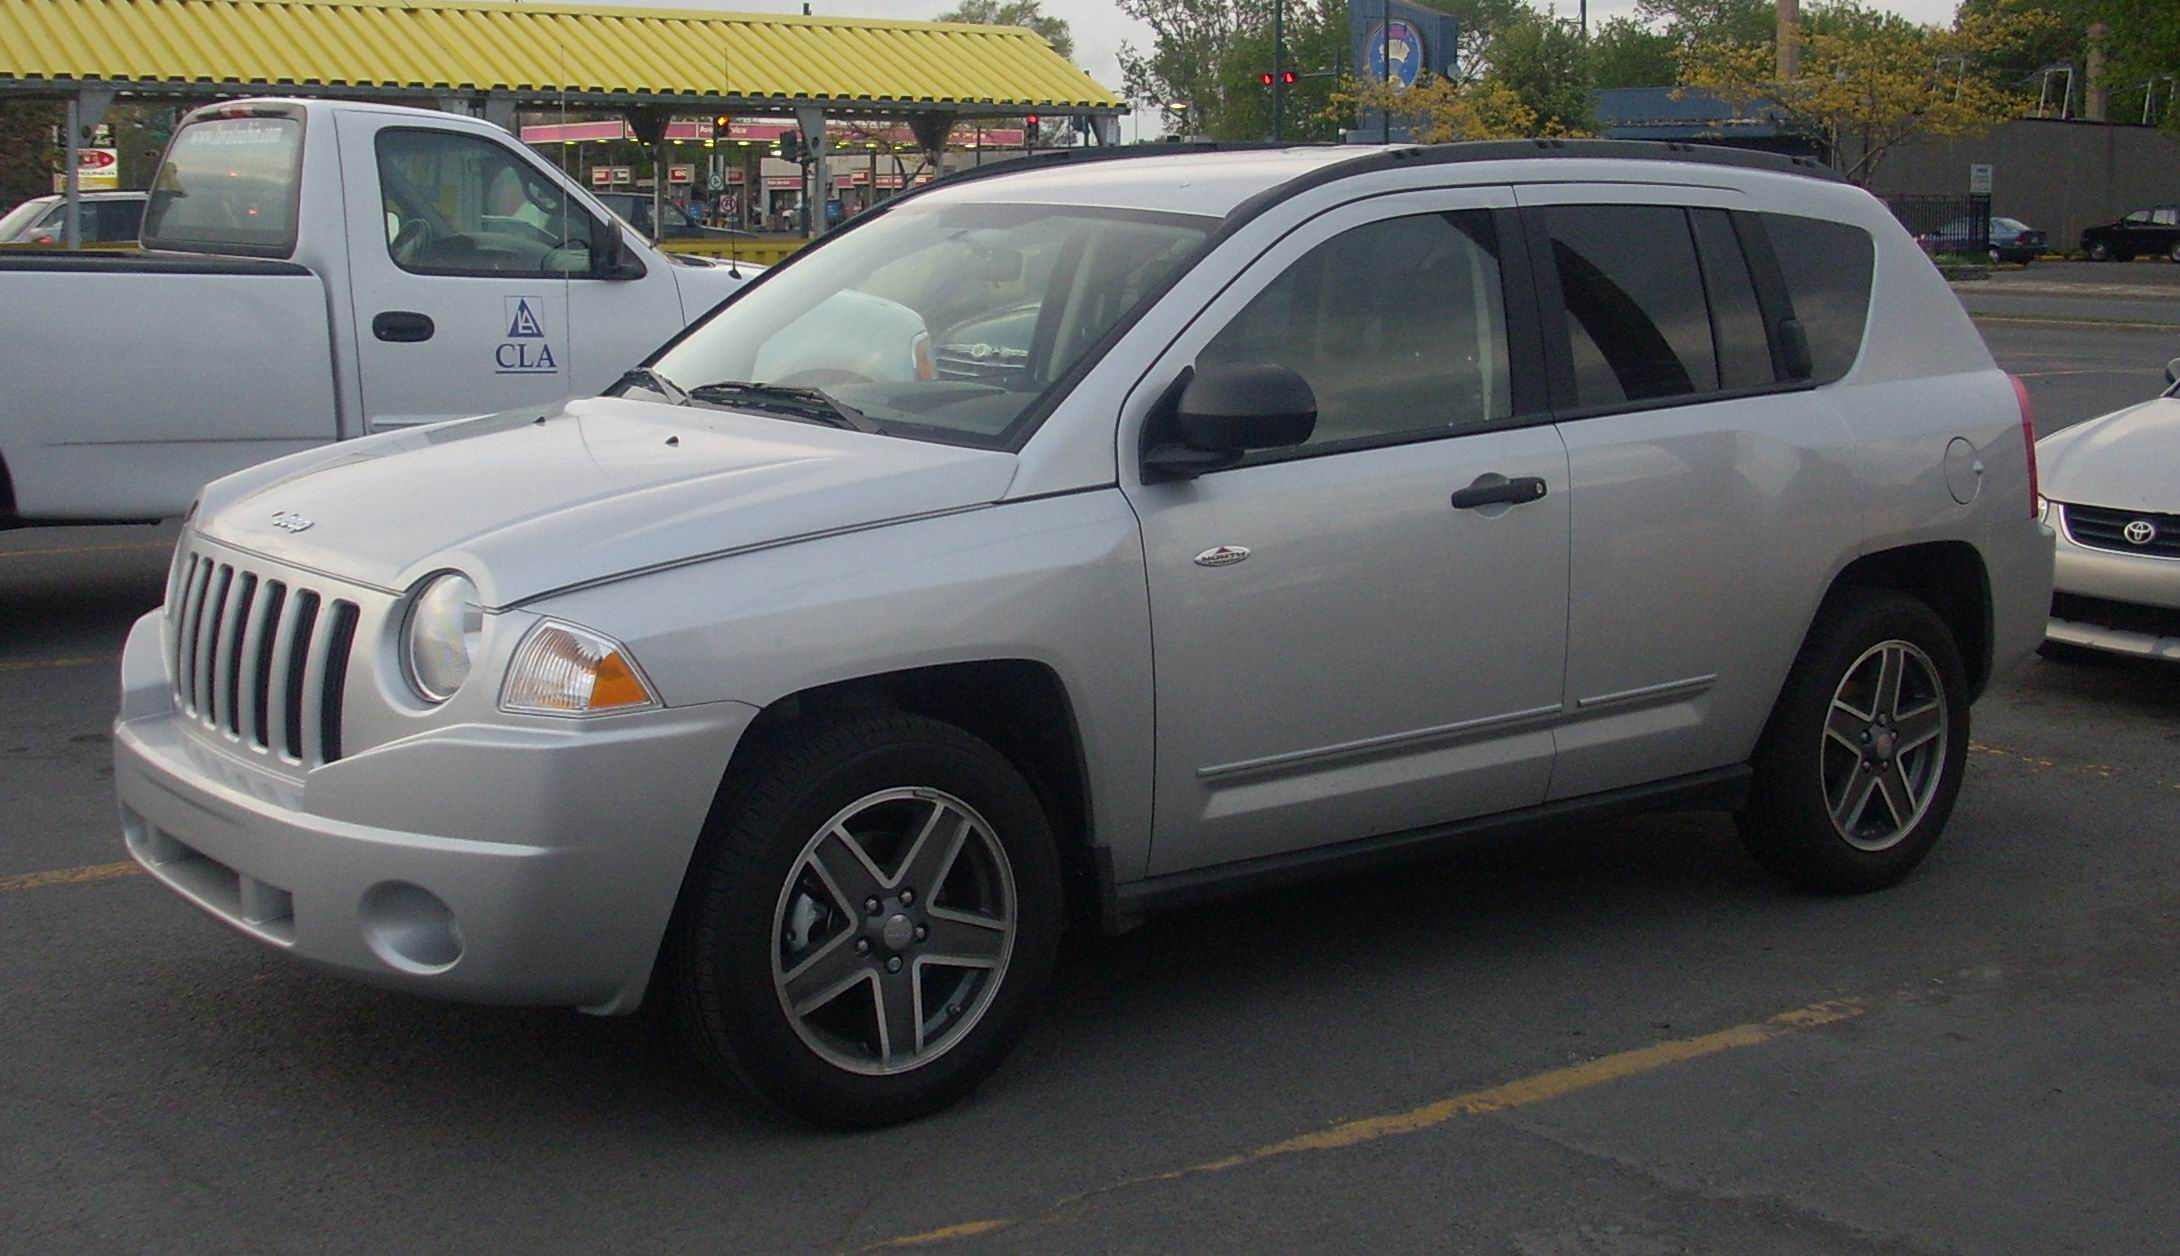 2008 jeep compass information and photos zombiedrive. Black Bedroom Furniture Sets. Home Design Ideas